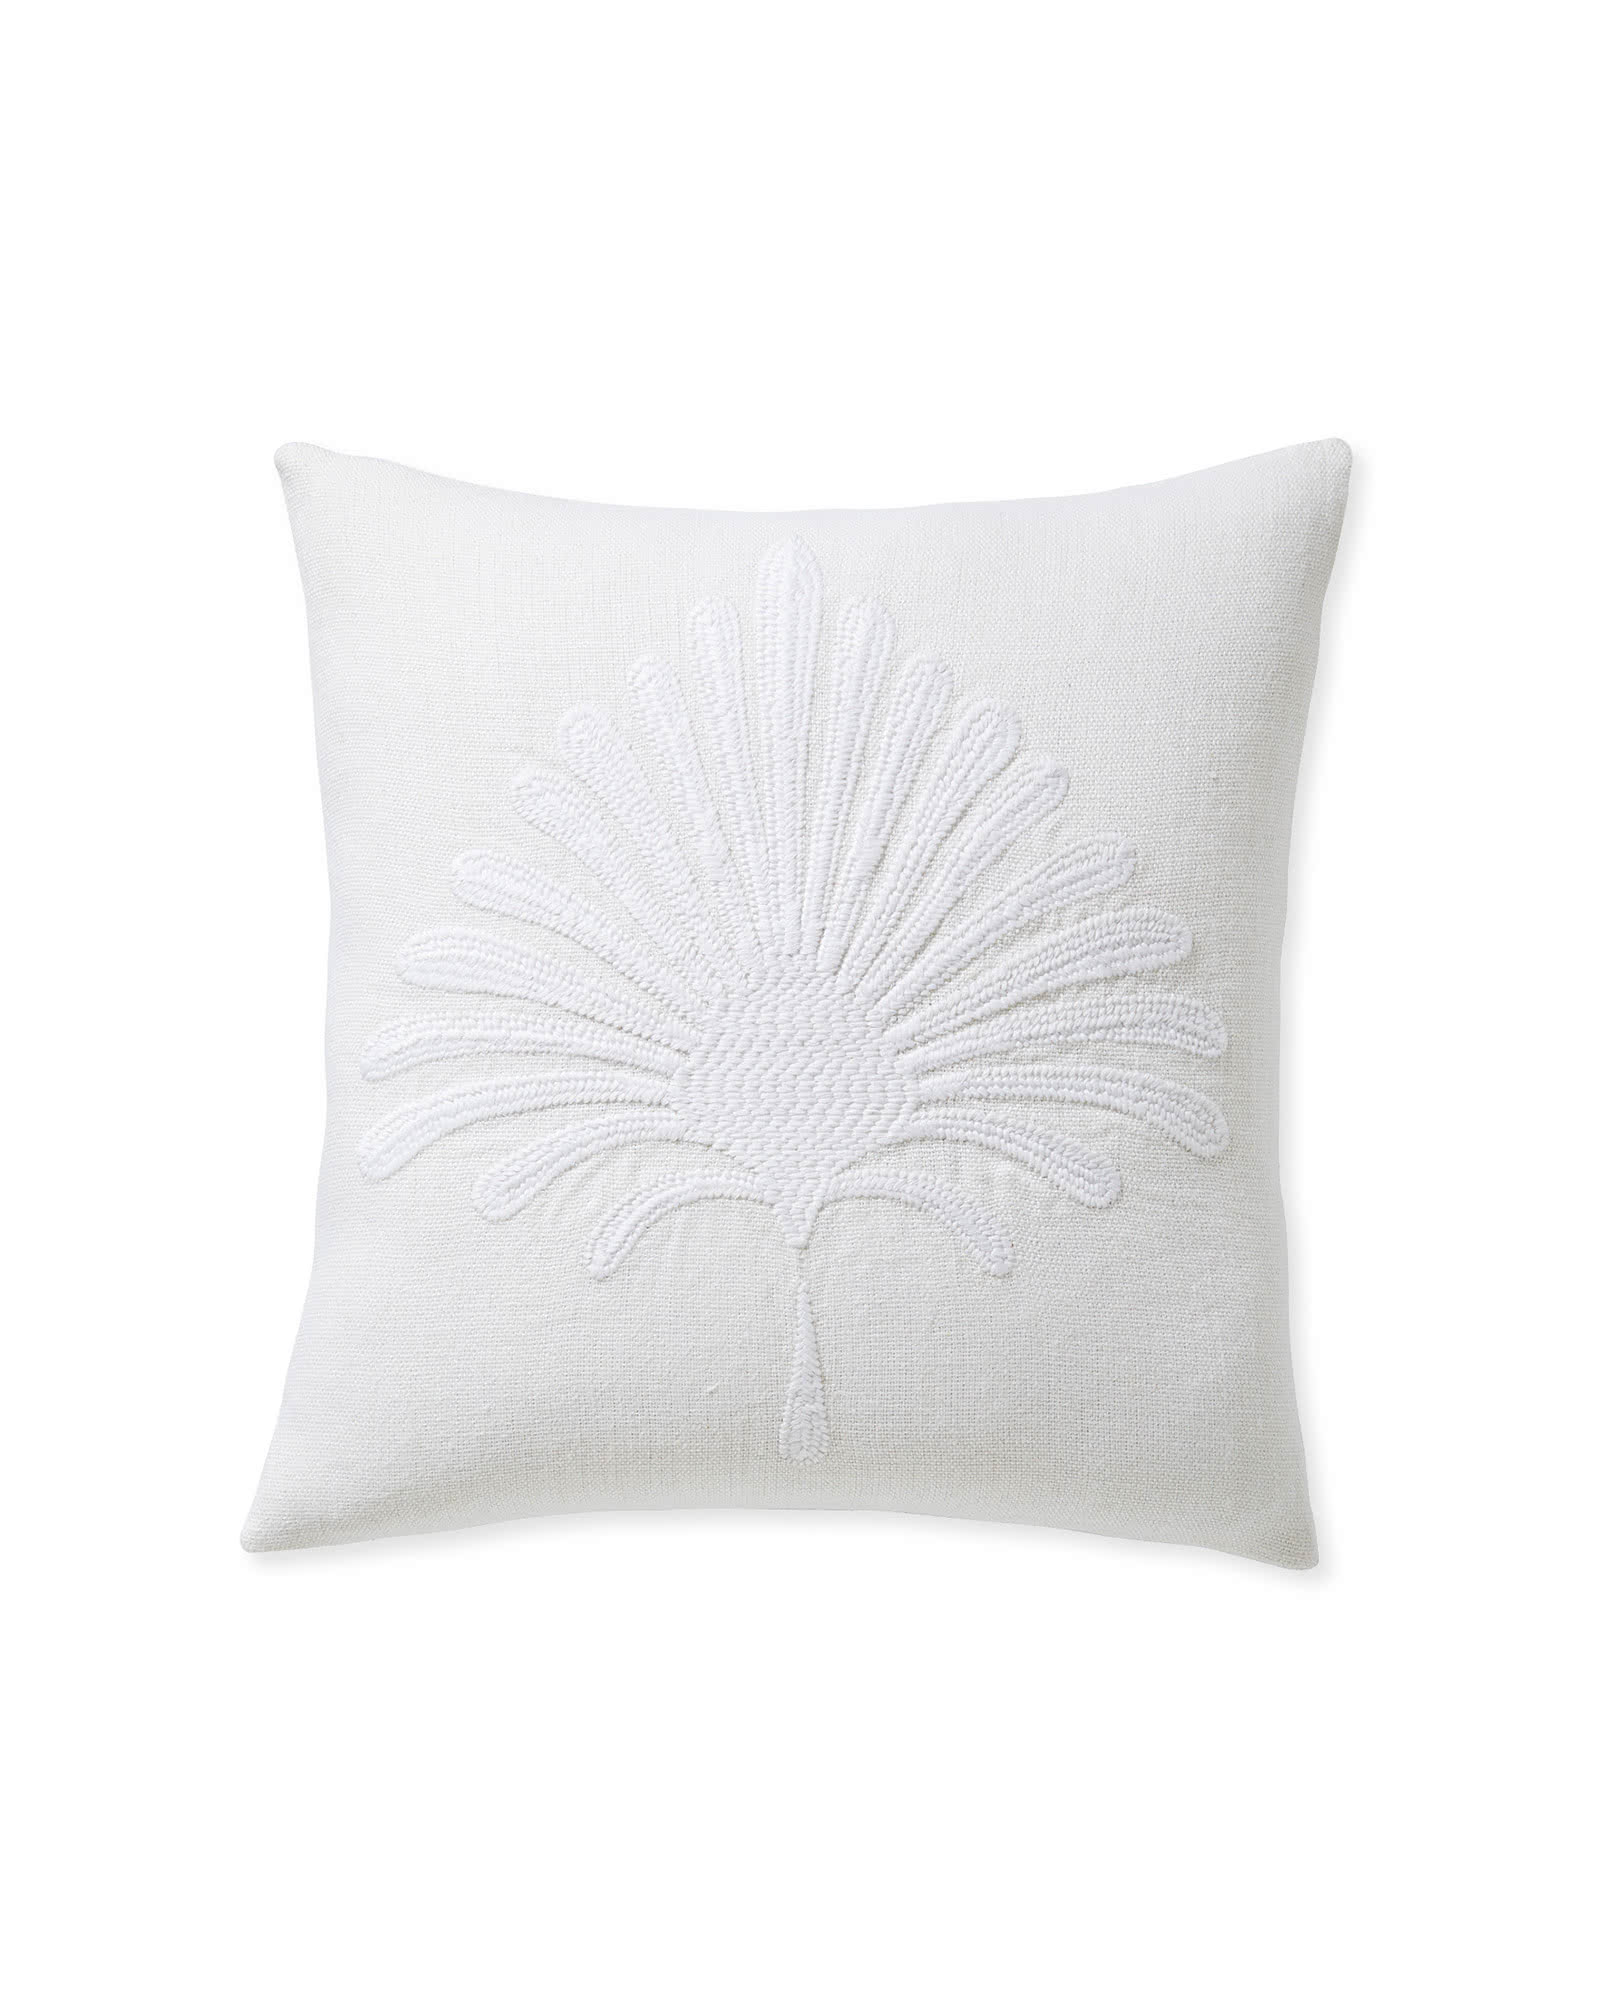 Paloma Embroidered Pillow Cover,